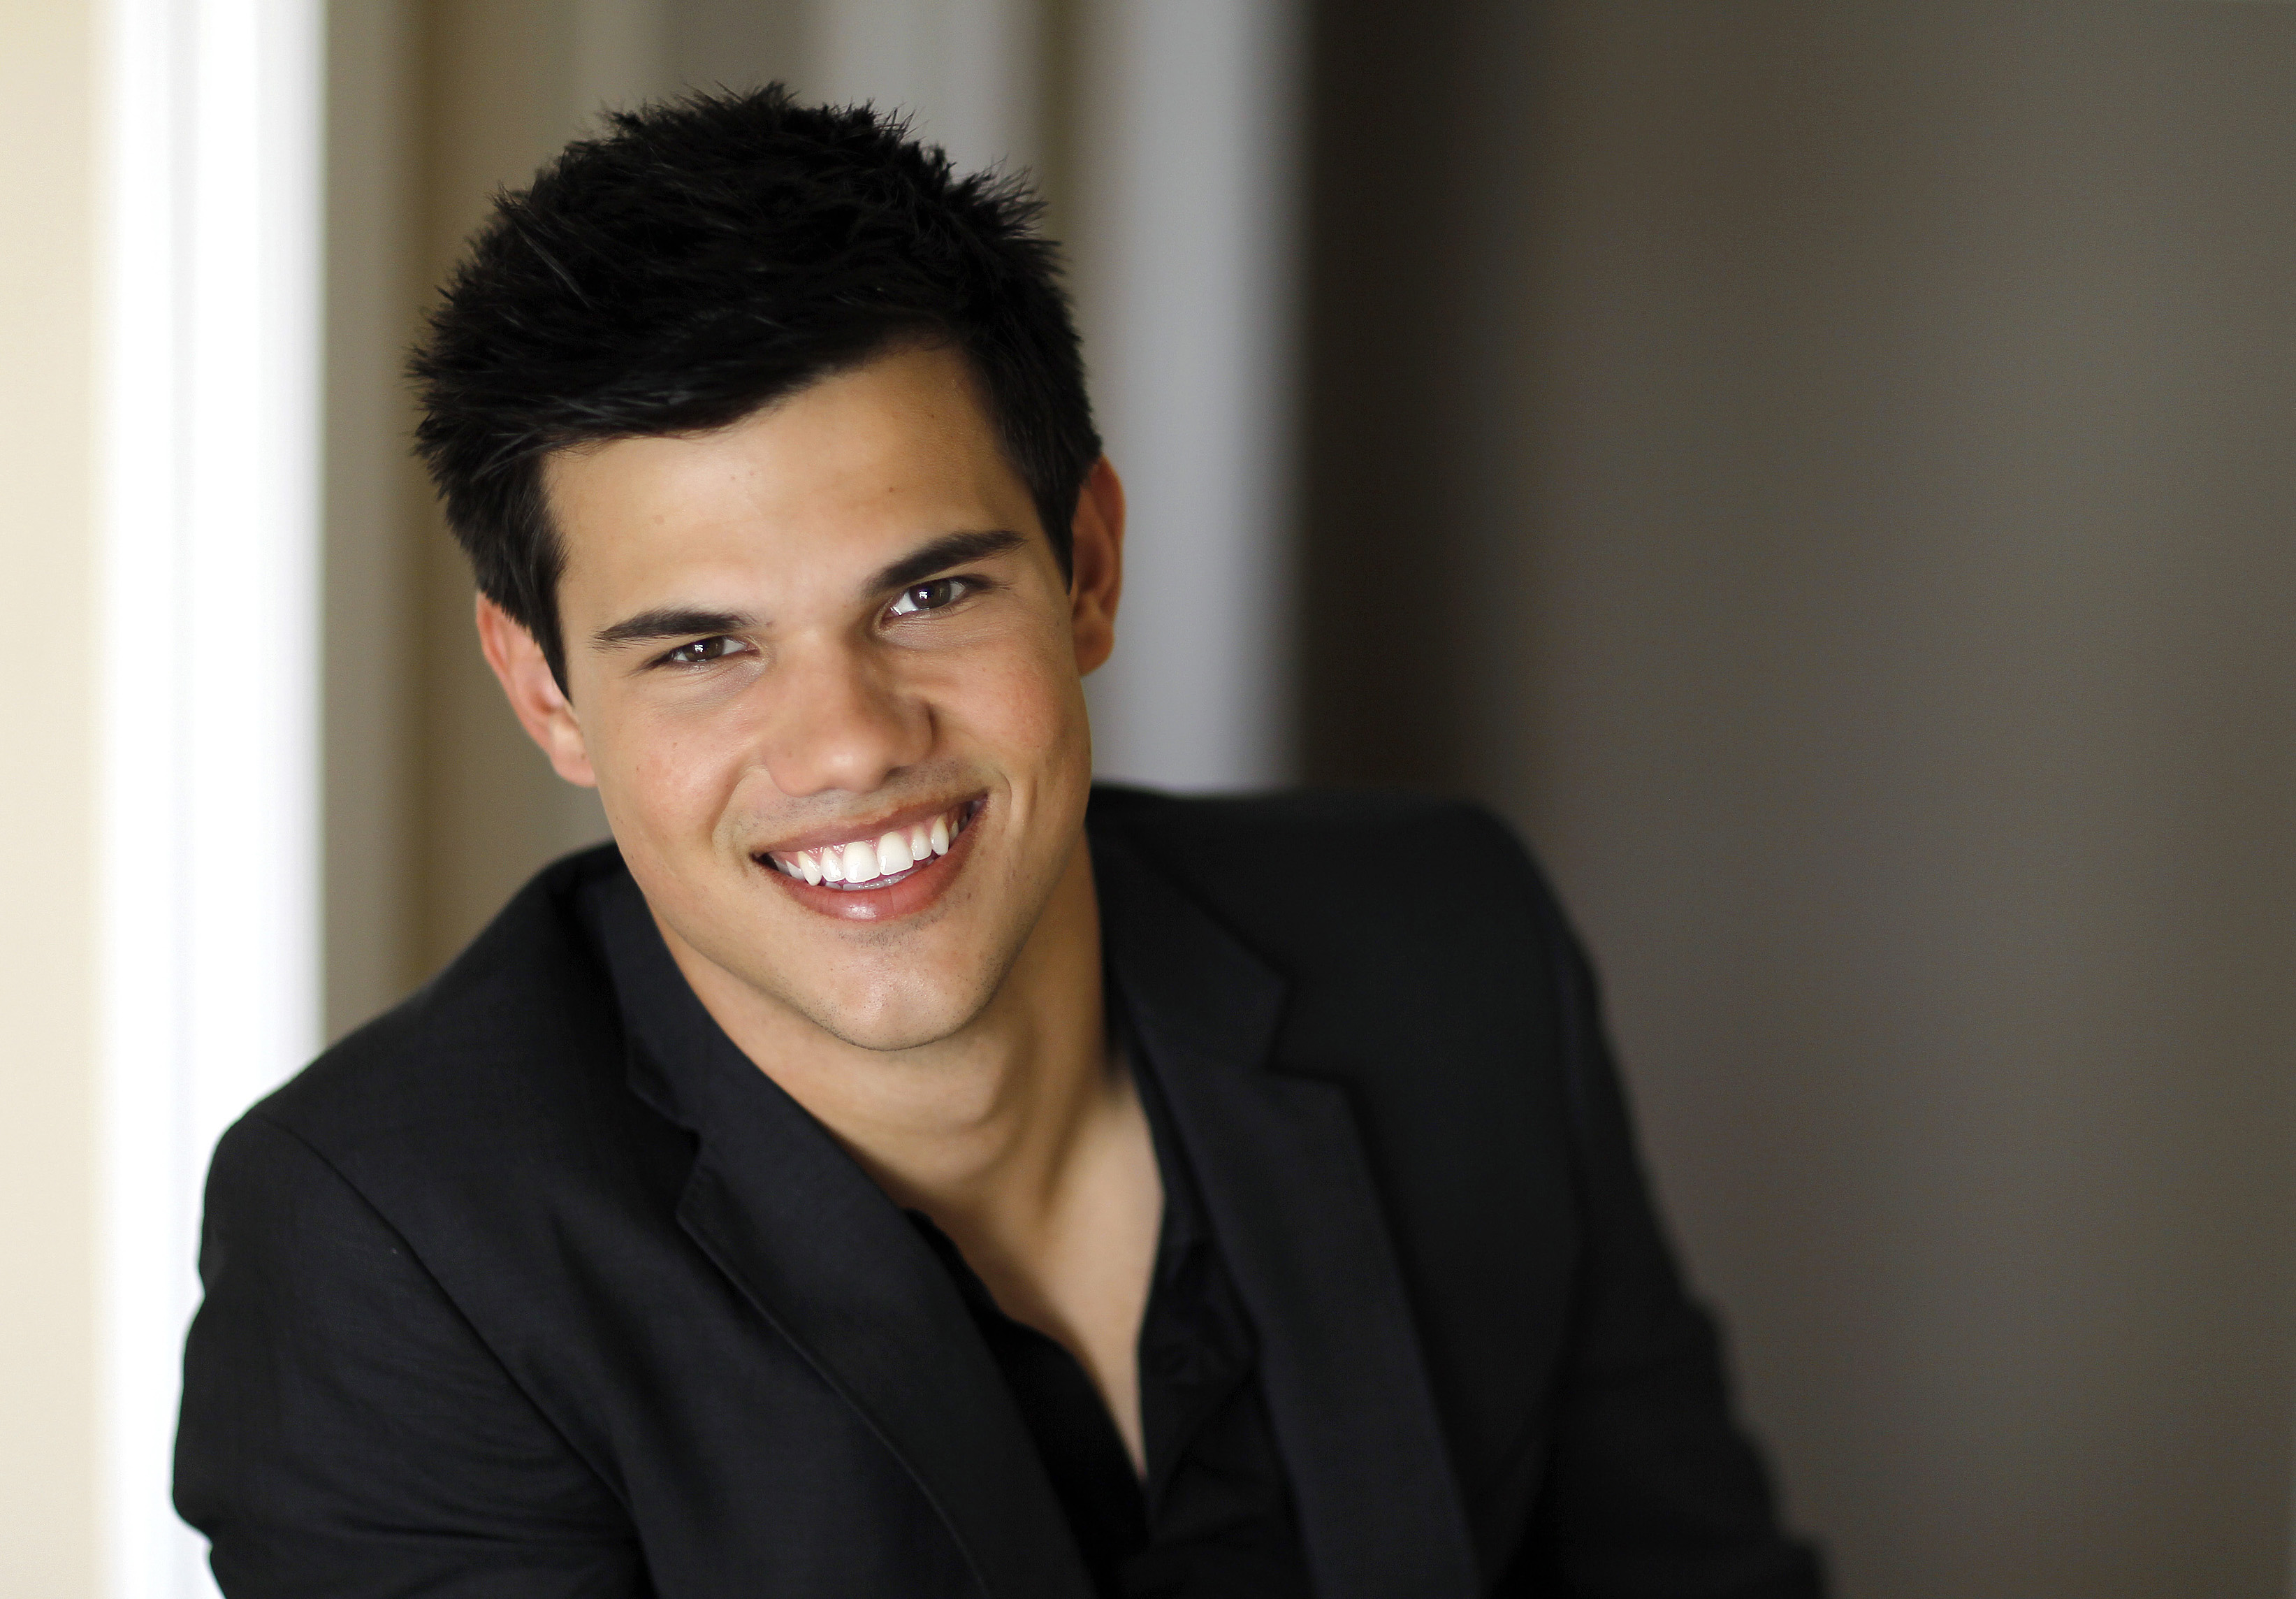 http://images6.fanpop.com/image/photos/33500000/New-Reutner-outtakes-from-Eclipse-promotional-tour-taylor-lautner-33599796-3286-2288.jpg